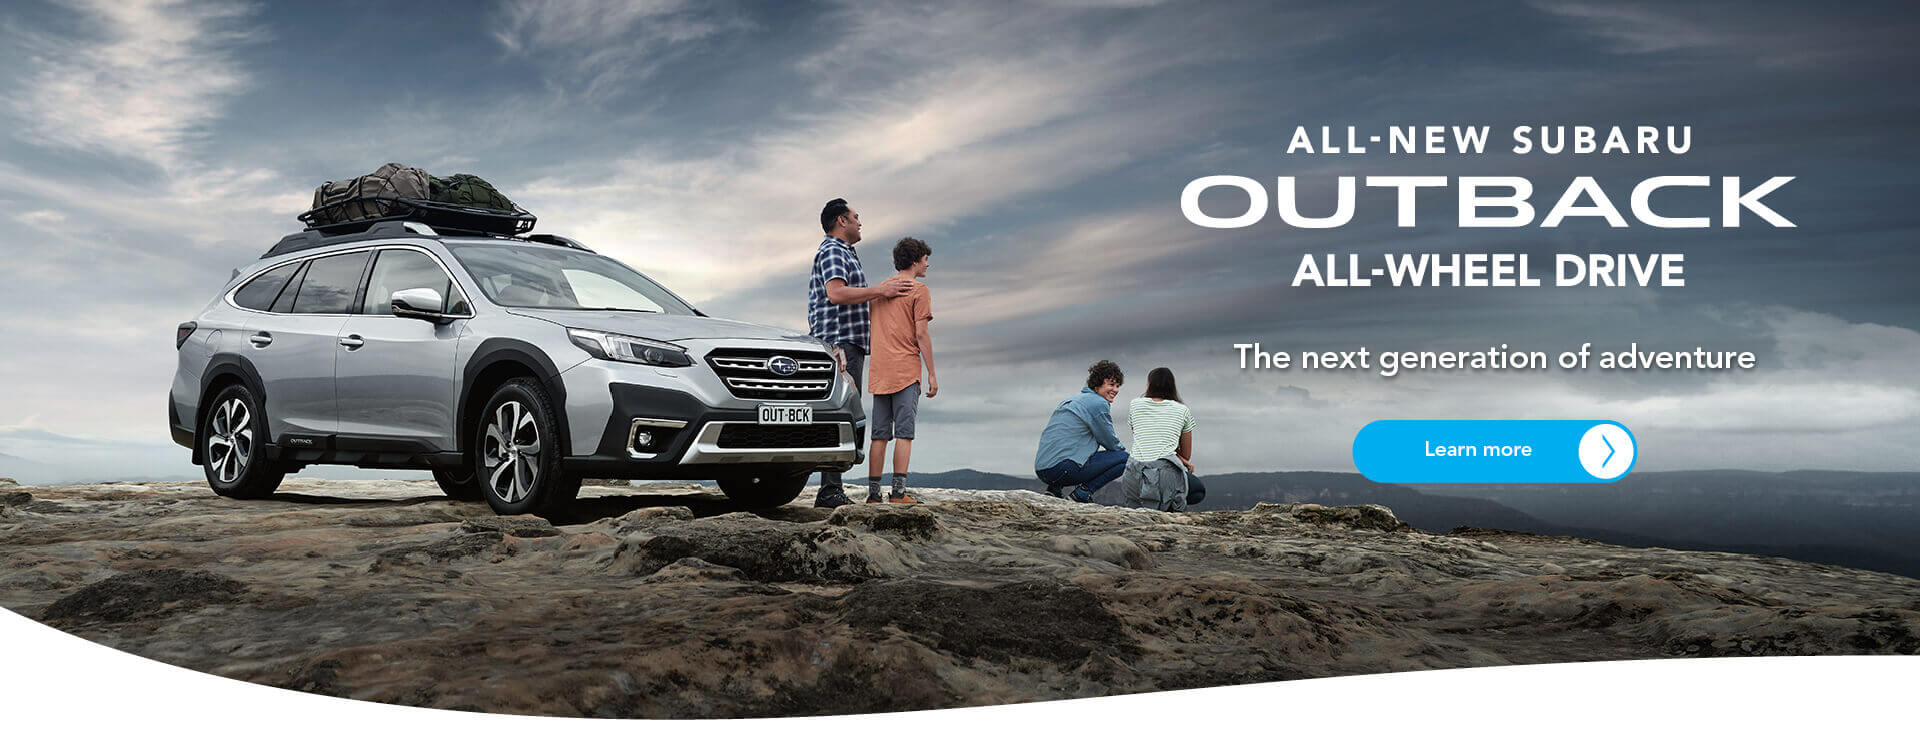 The All-new Subaru Outback All-Wheel Drive. The next generation of adventure.